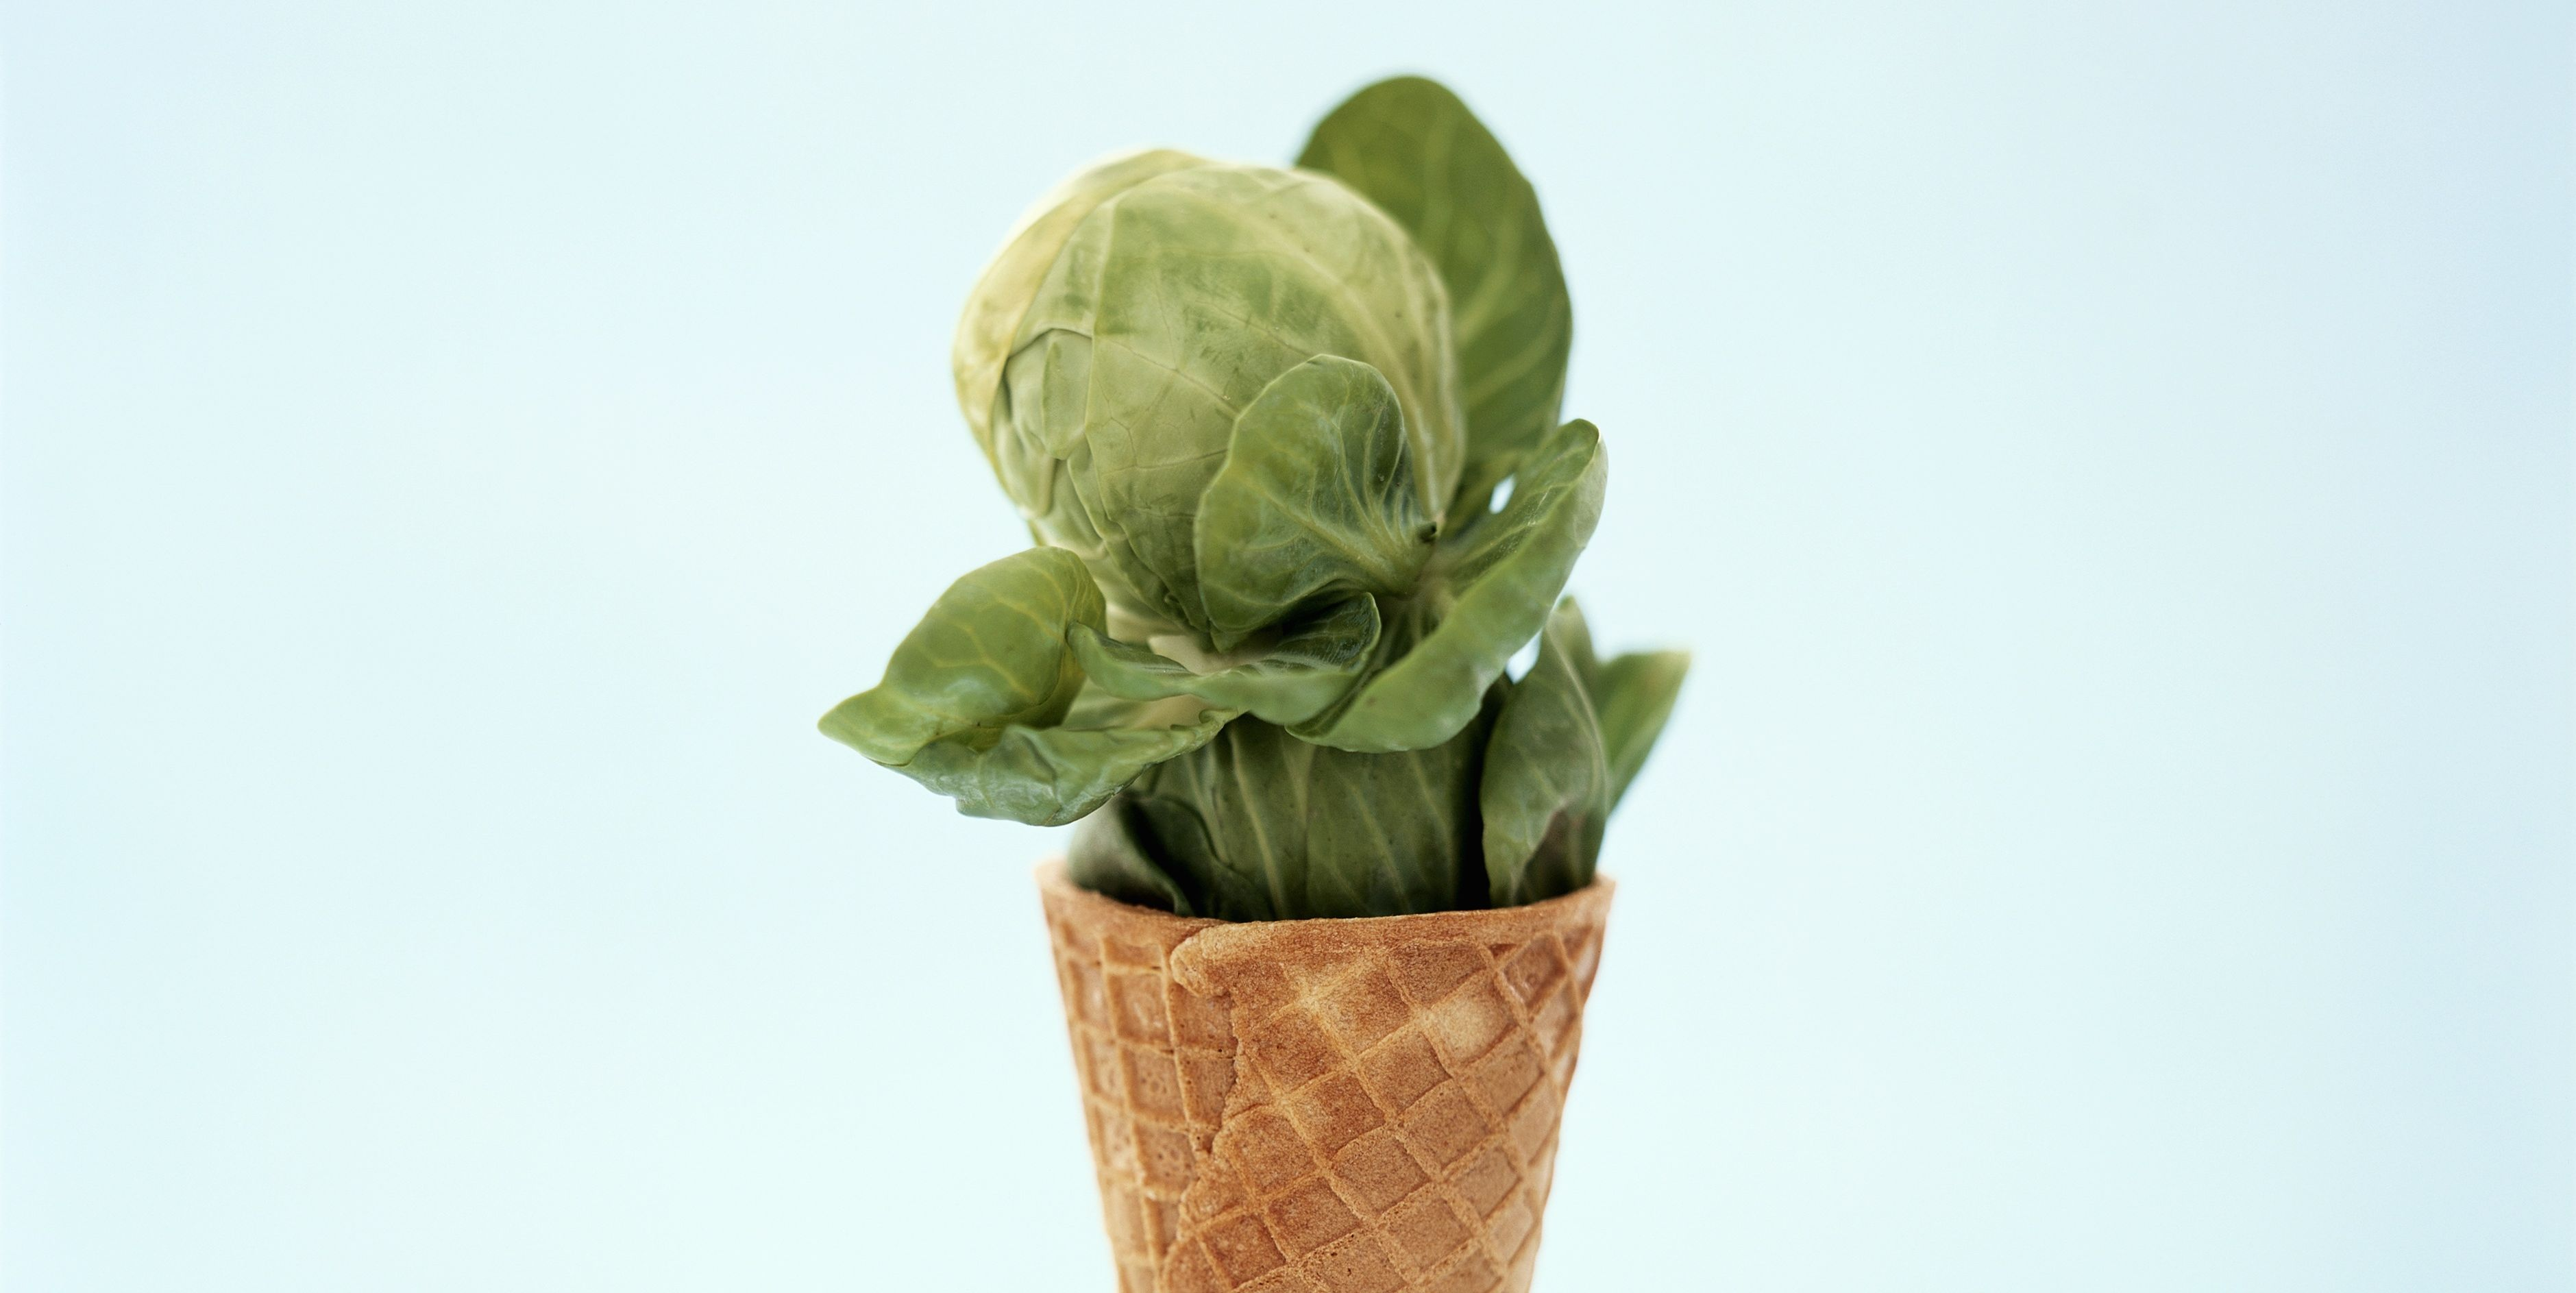 A Brussels Sprout with Greens in an Ice Cream Cone